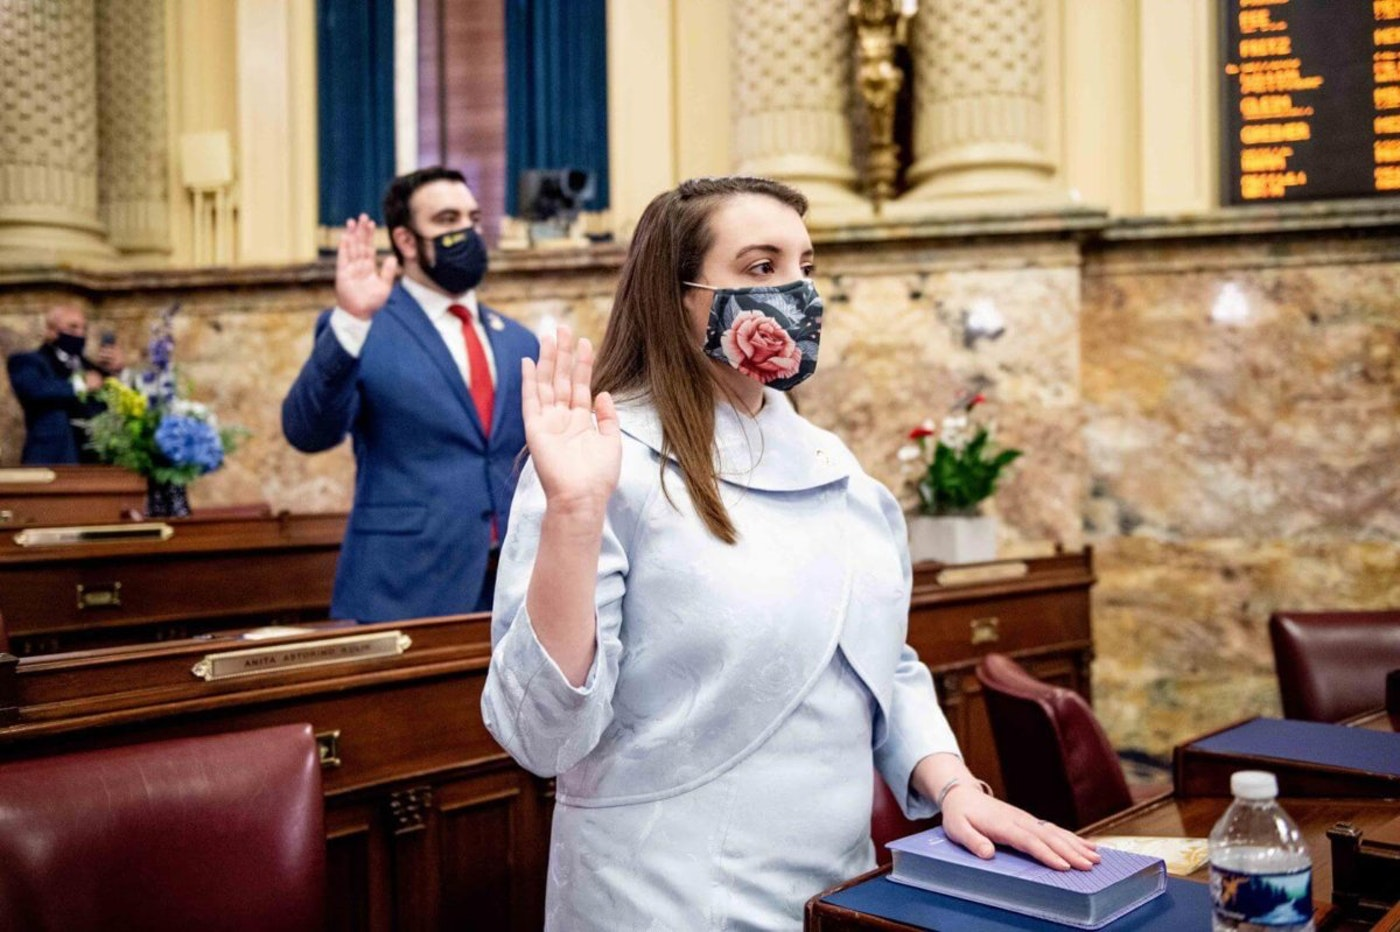 State Rep. Jessica Benham is sworn in on Jan. 5, 2021. Benham is the first openly queer woman and openly autistic person elected to the state Legislature. (Courtesy of Pennsylvania House of Representatives)